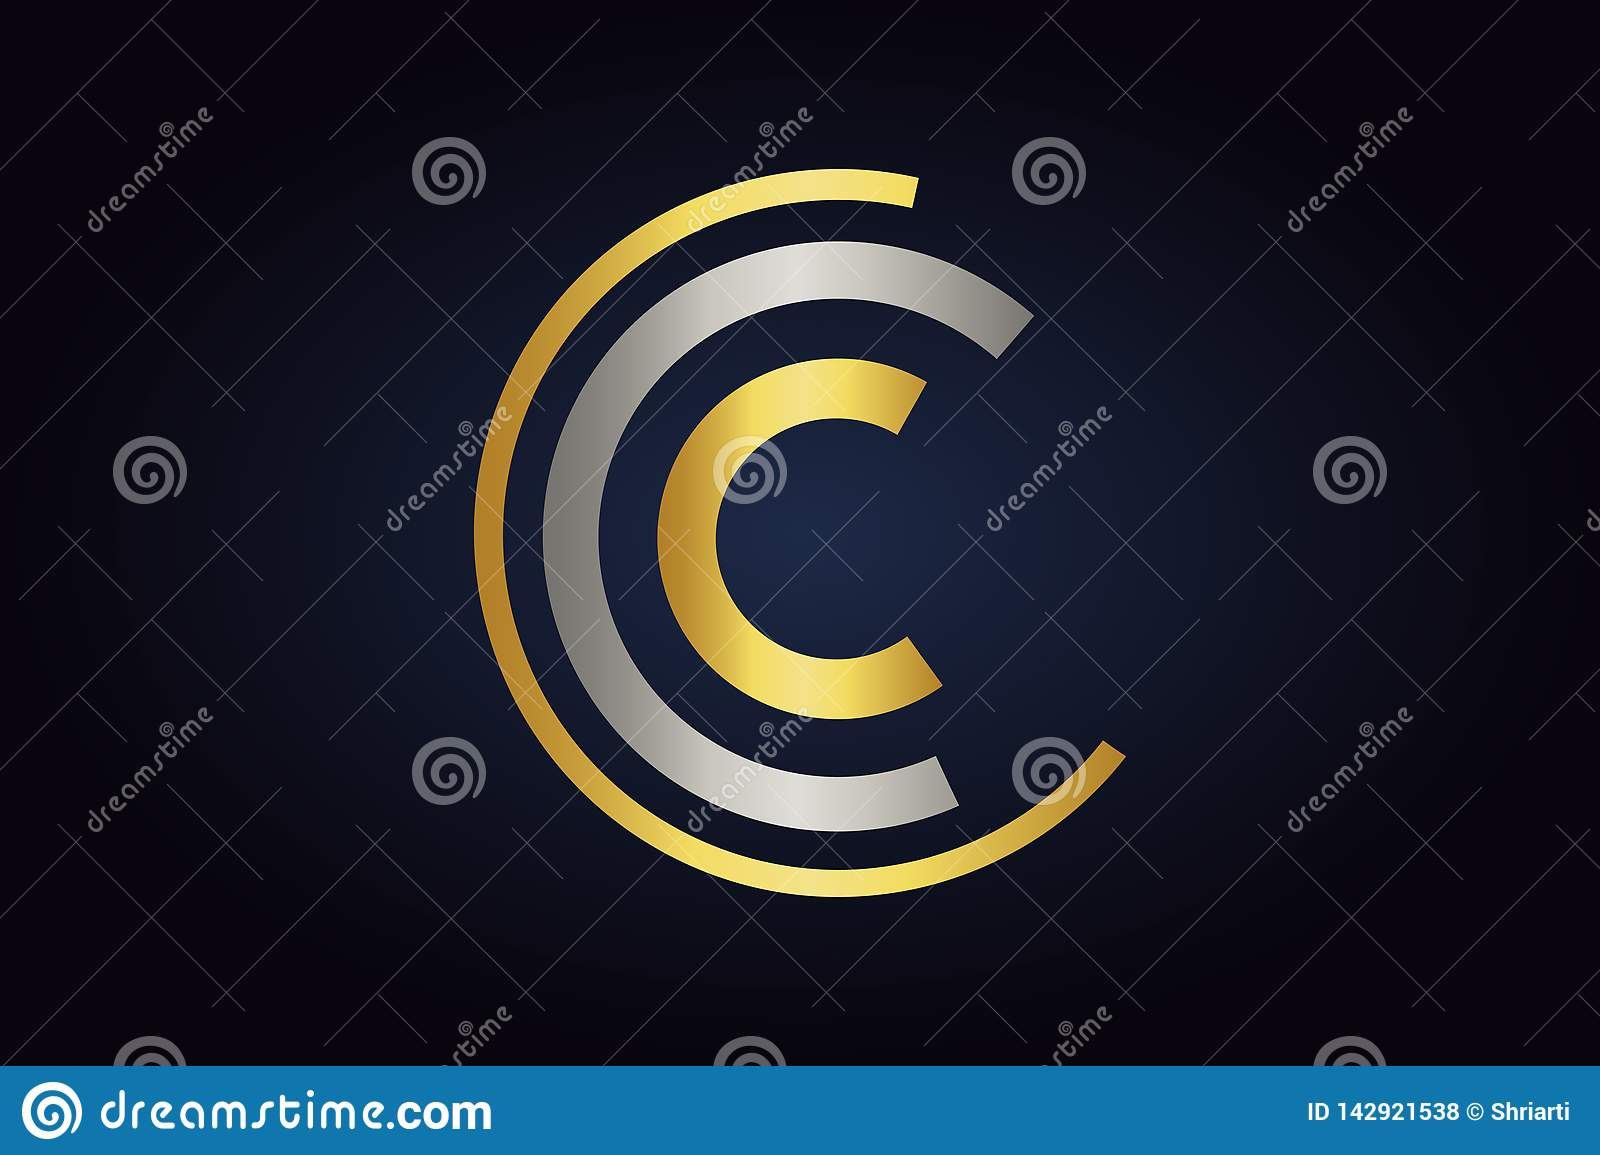 Three Letters C vector logo in silver and gold colors isolated on dark background.